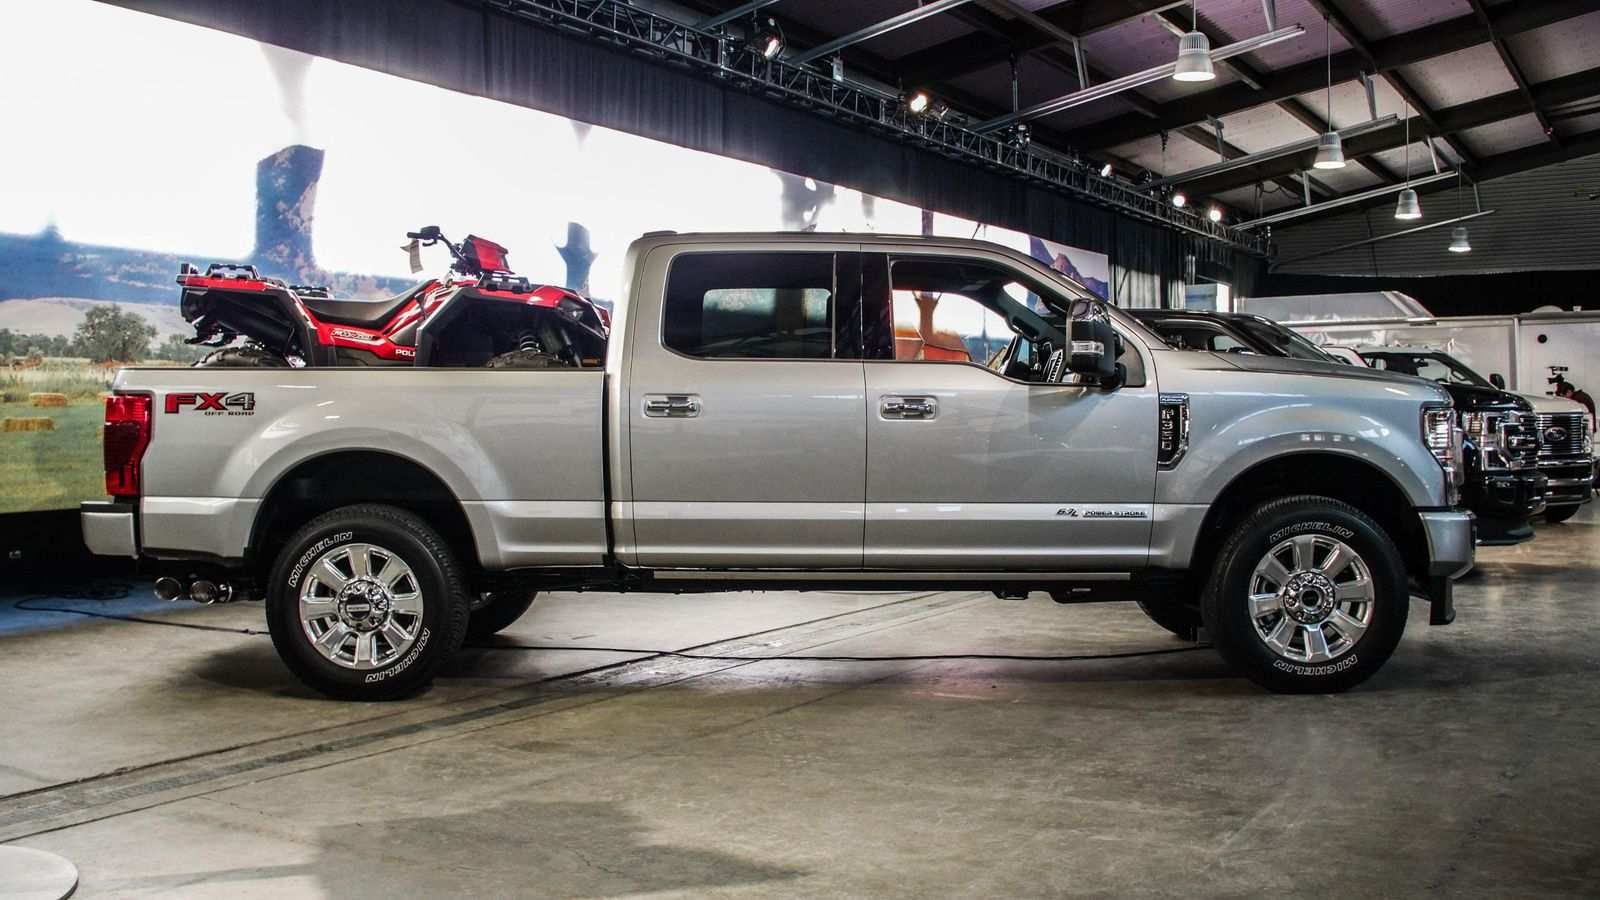 89 All New 2020 Ford F 150 Xlt Images for 2020 Ford F 150 Xlt